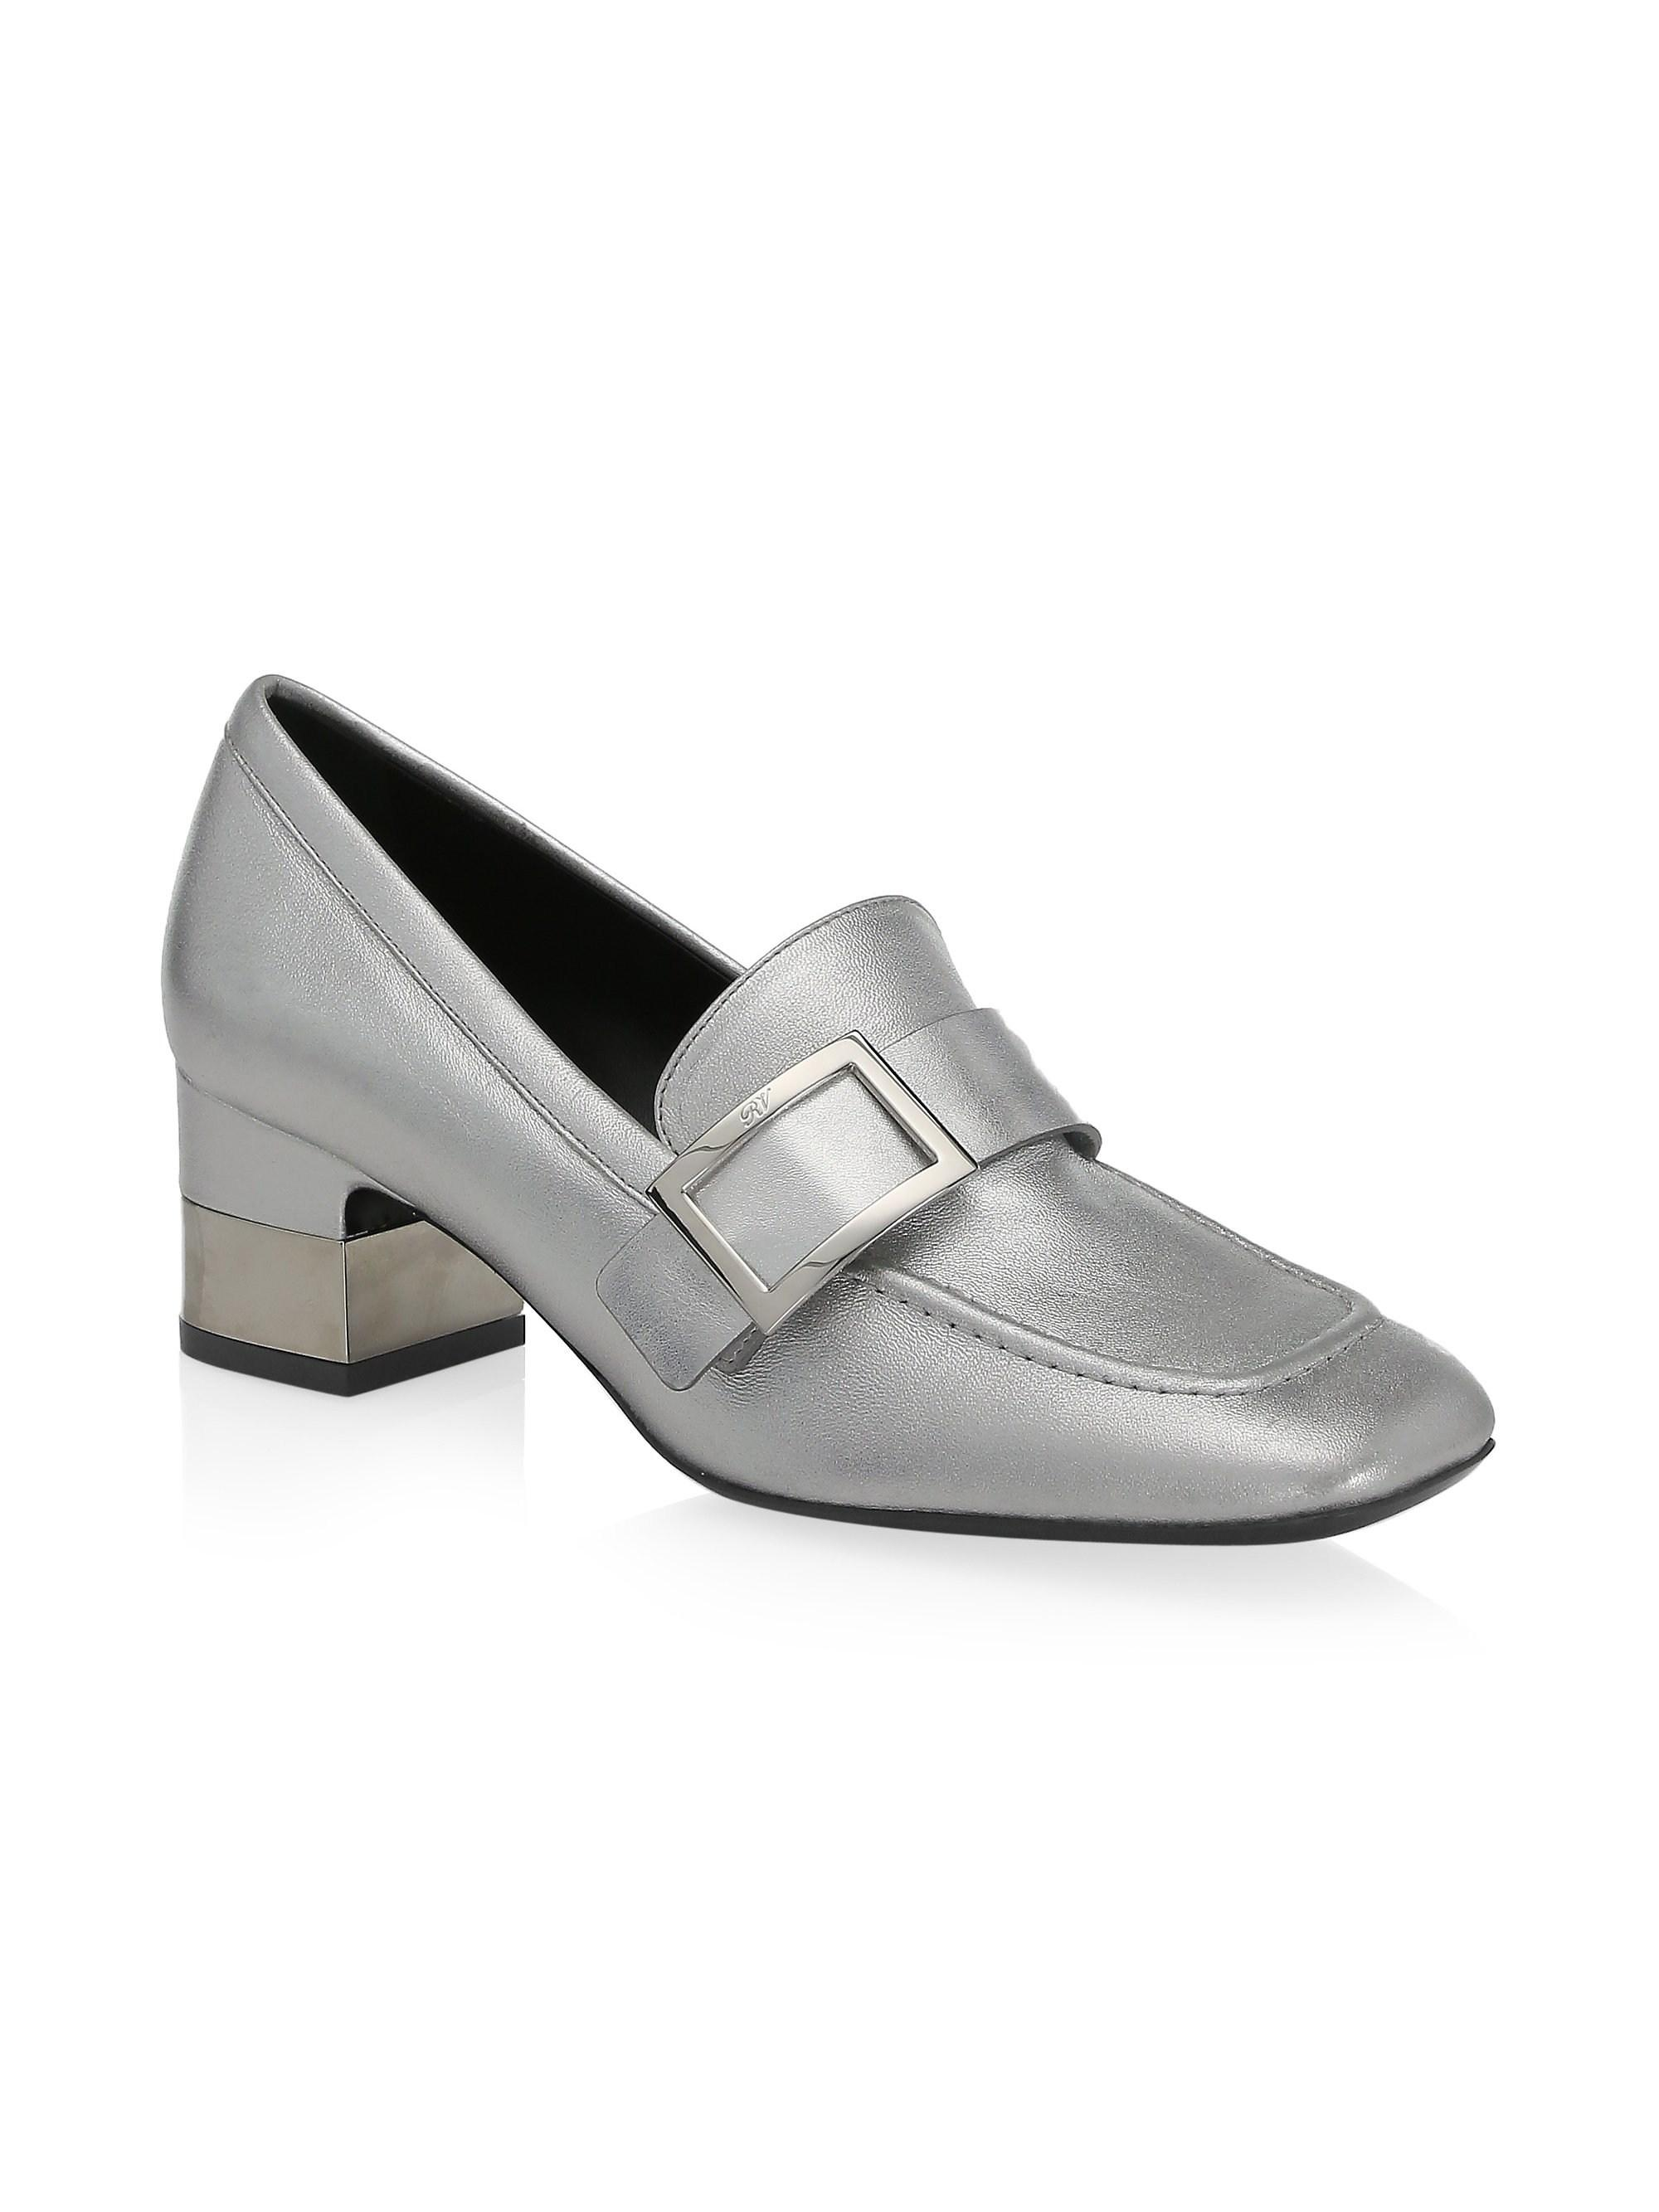 0affe9bda24 Roger Vivier - Metallic Leather Heeled Buckle Loafers - Lyst. View  fullscreen